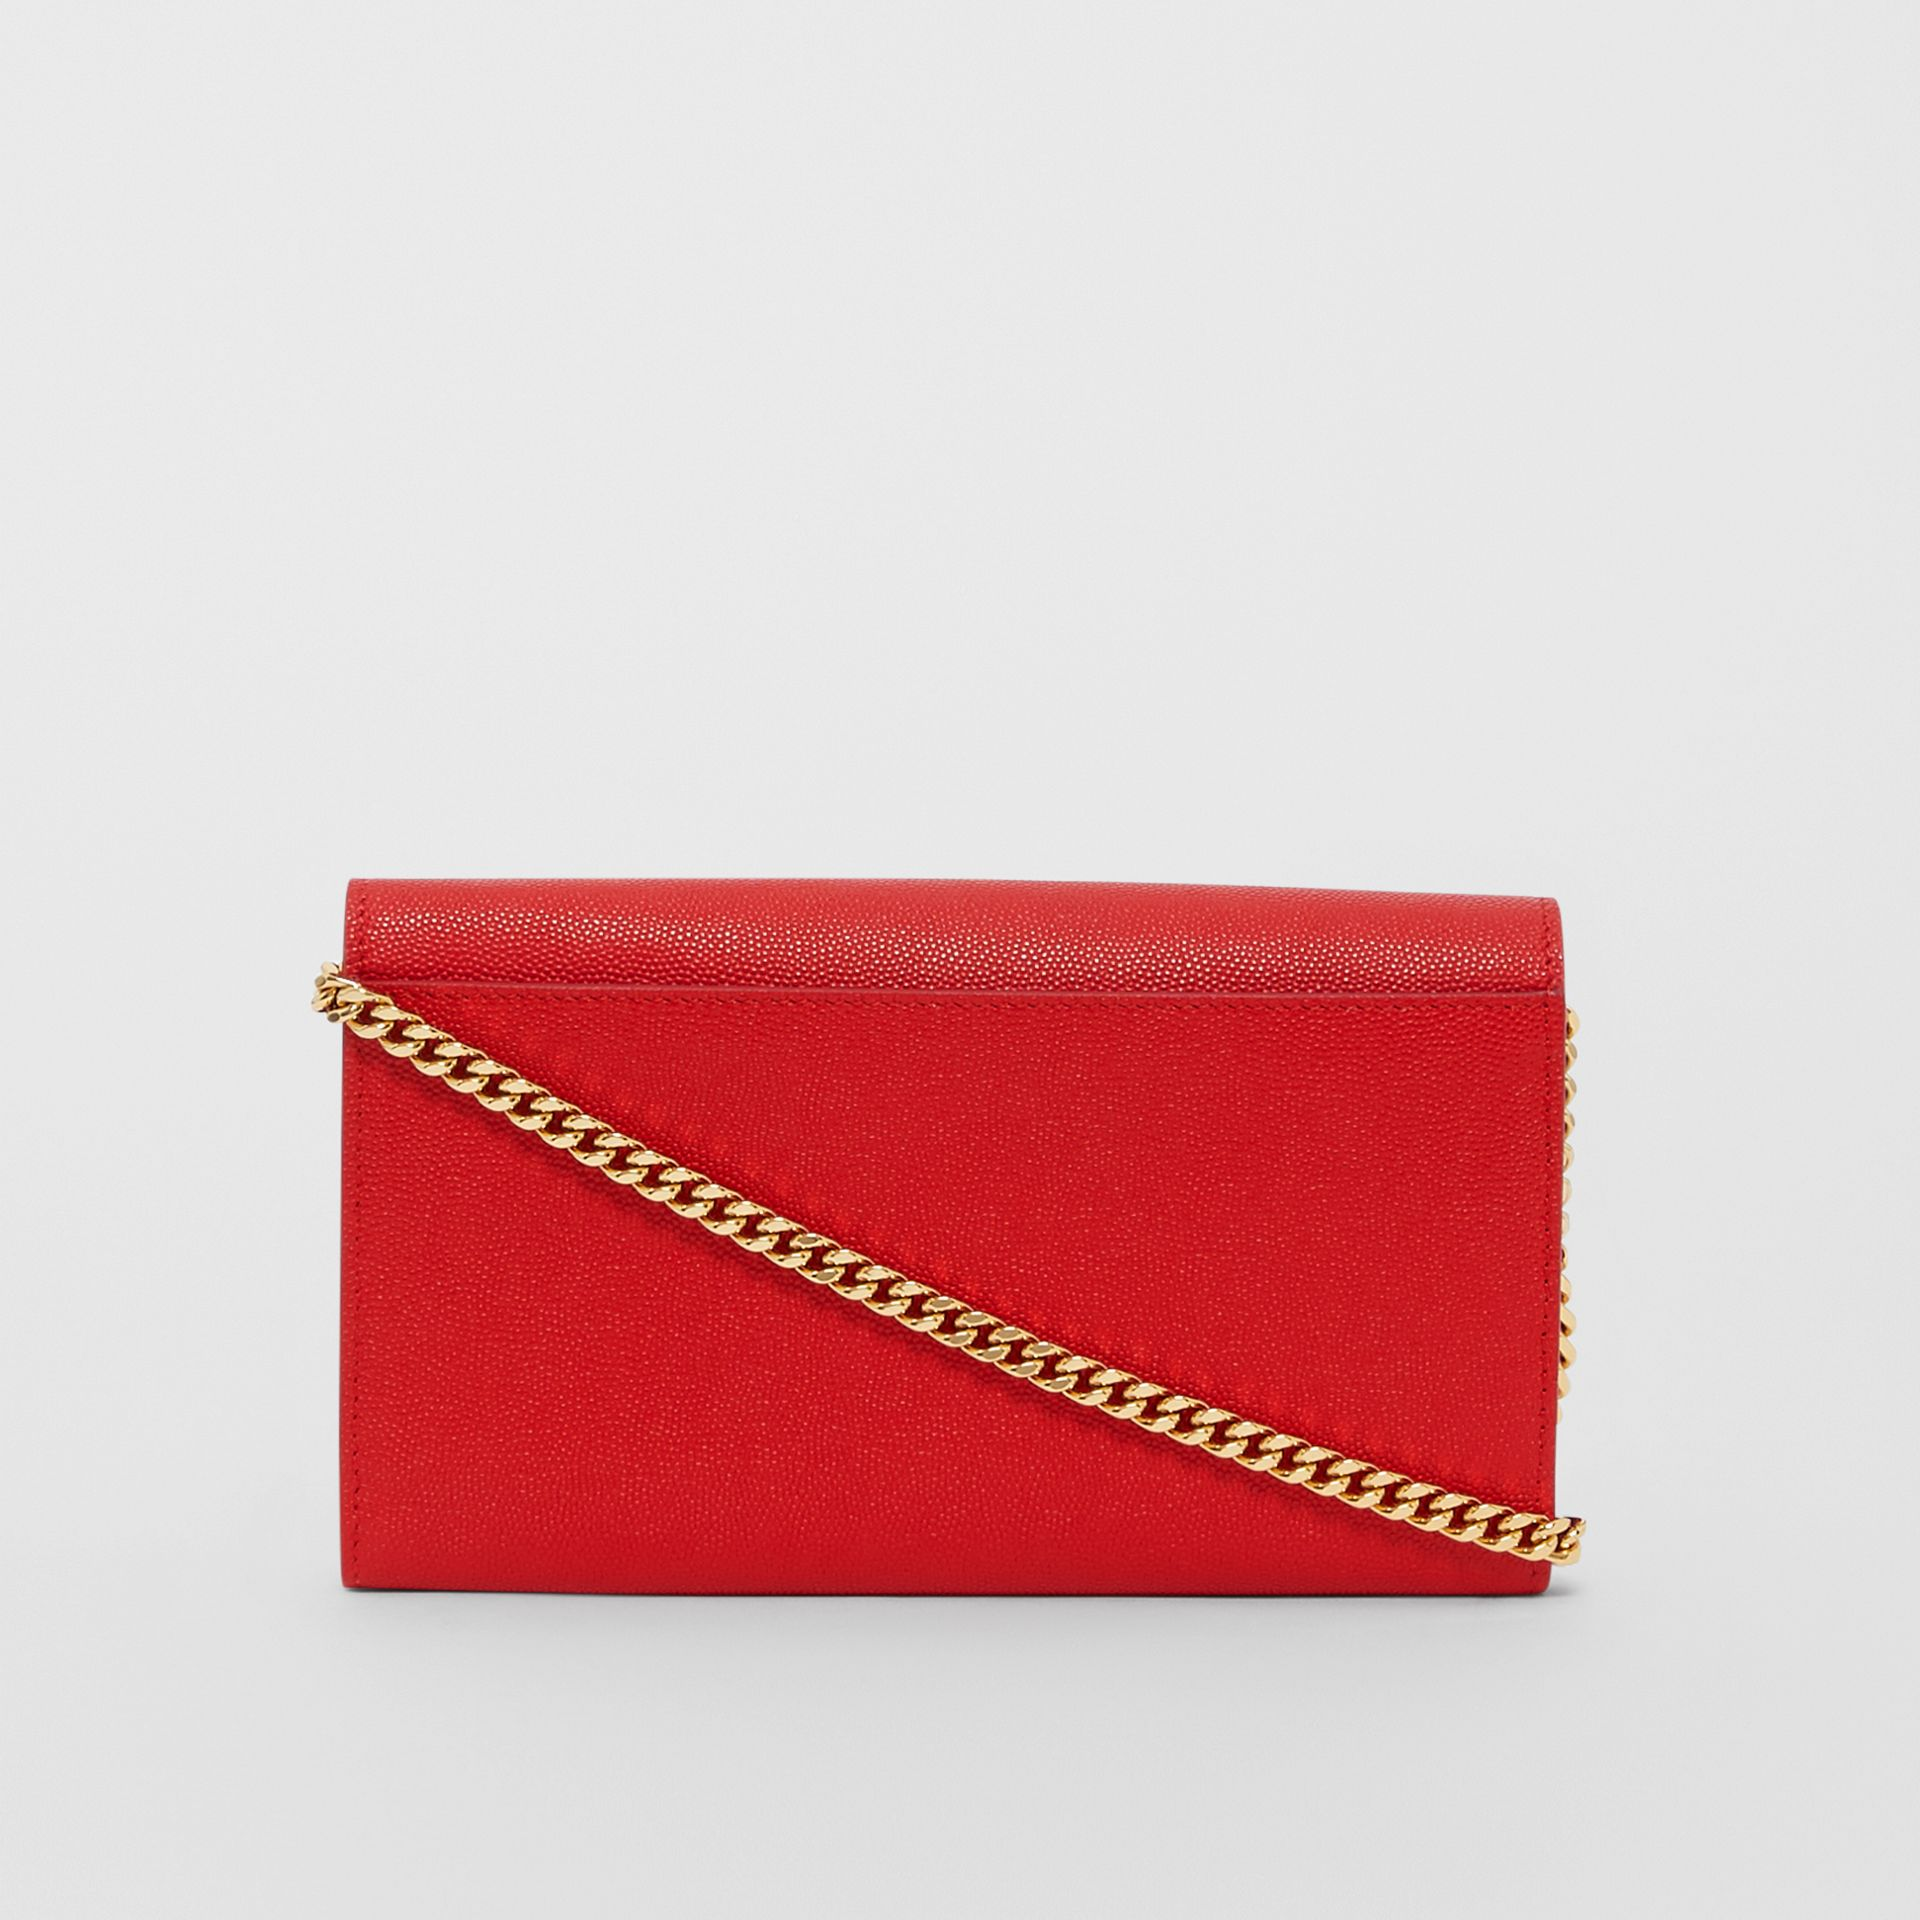 Monogram Motif Leather Wallet with Detachable Strap in Bright Red - Women | Burberry - gallery image 5